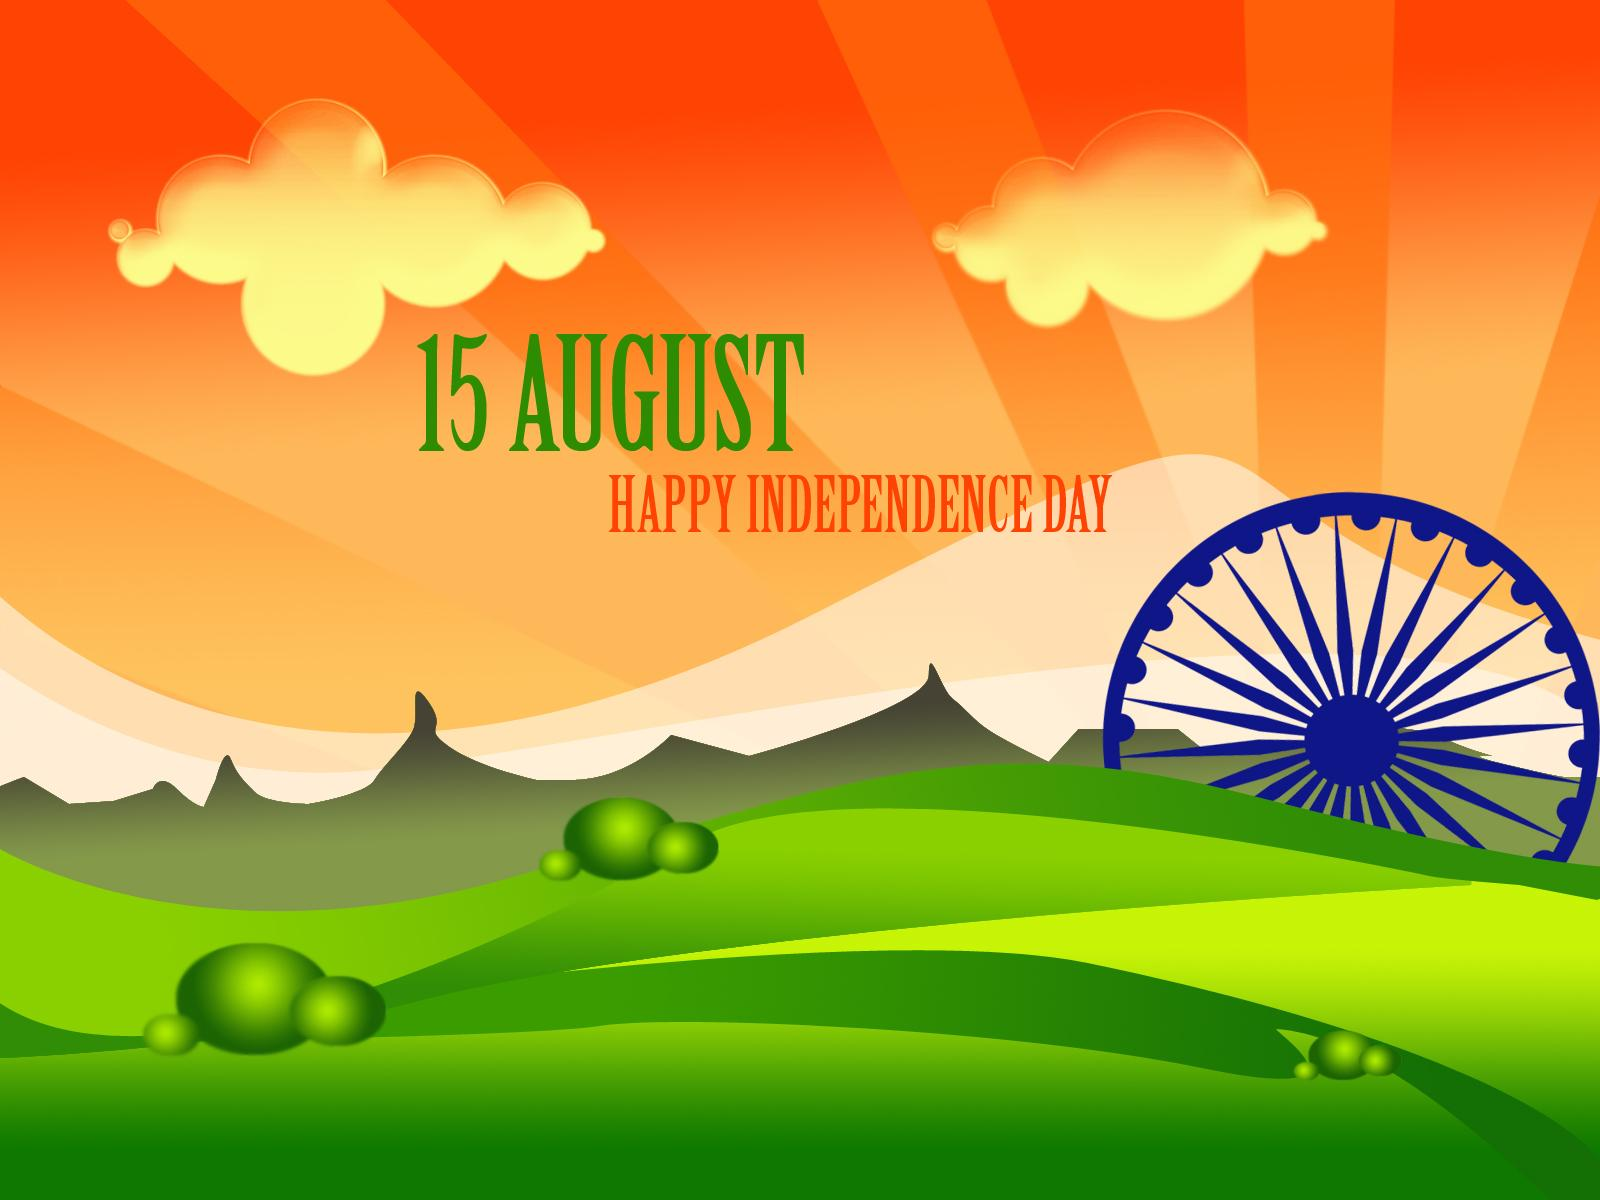 Happy independence day 2018 images wishes pictures collection happy independence day 15 august hd pictures kristyandbryce Gallery